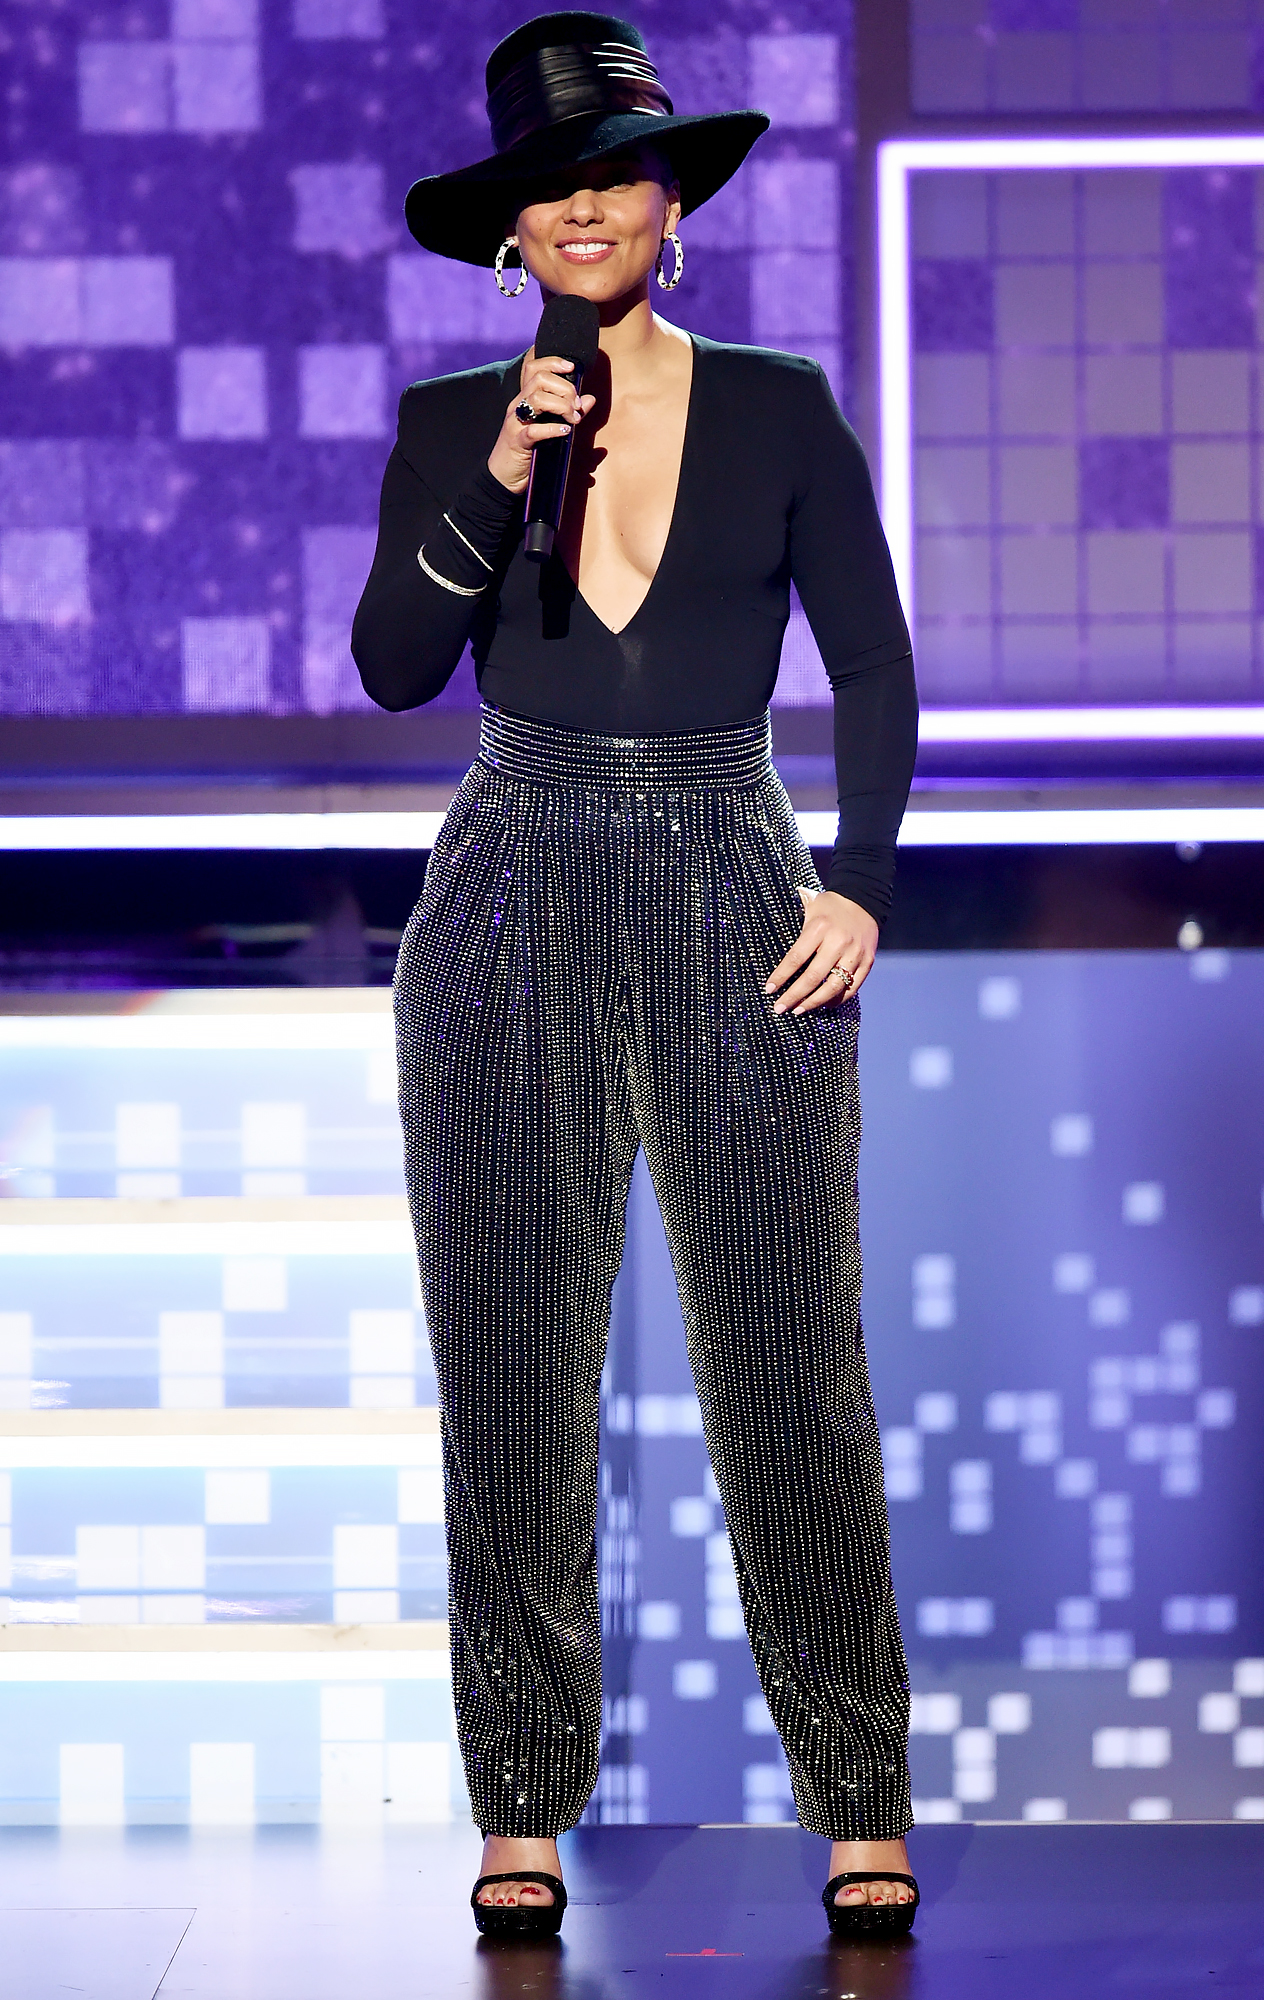 alicia-keys-grammys-2019-looks-6 - The only thing cooler than the songstress' shimmering Balmain trousers?